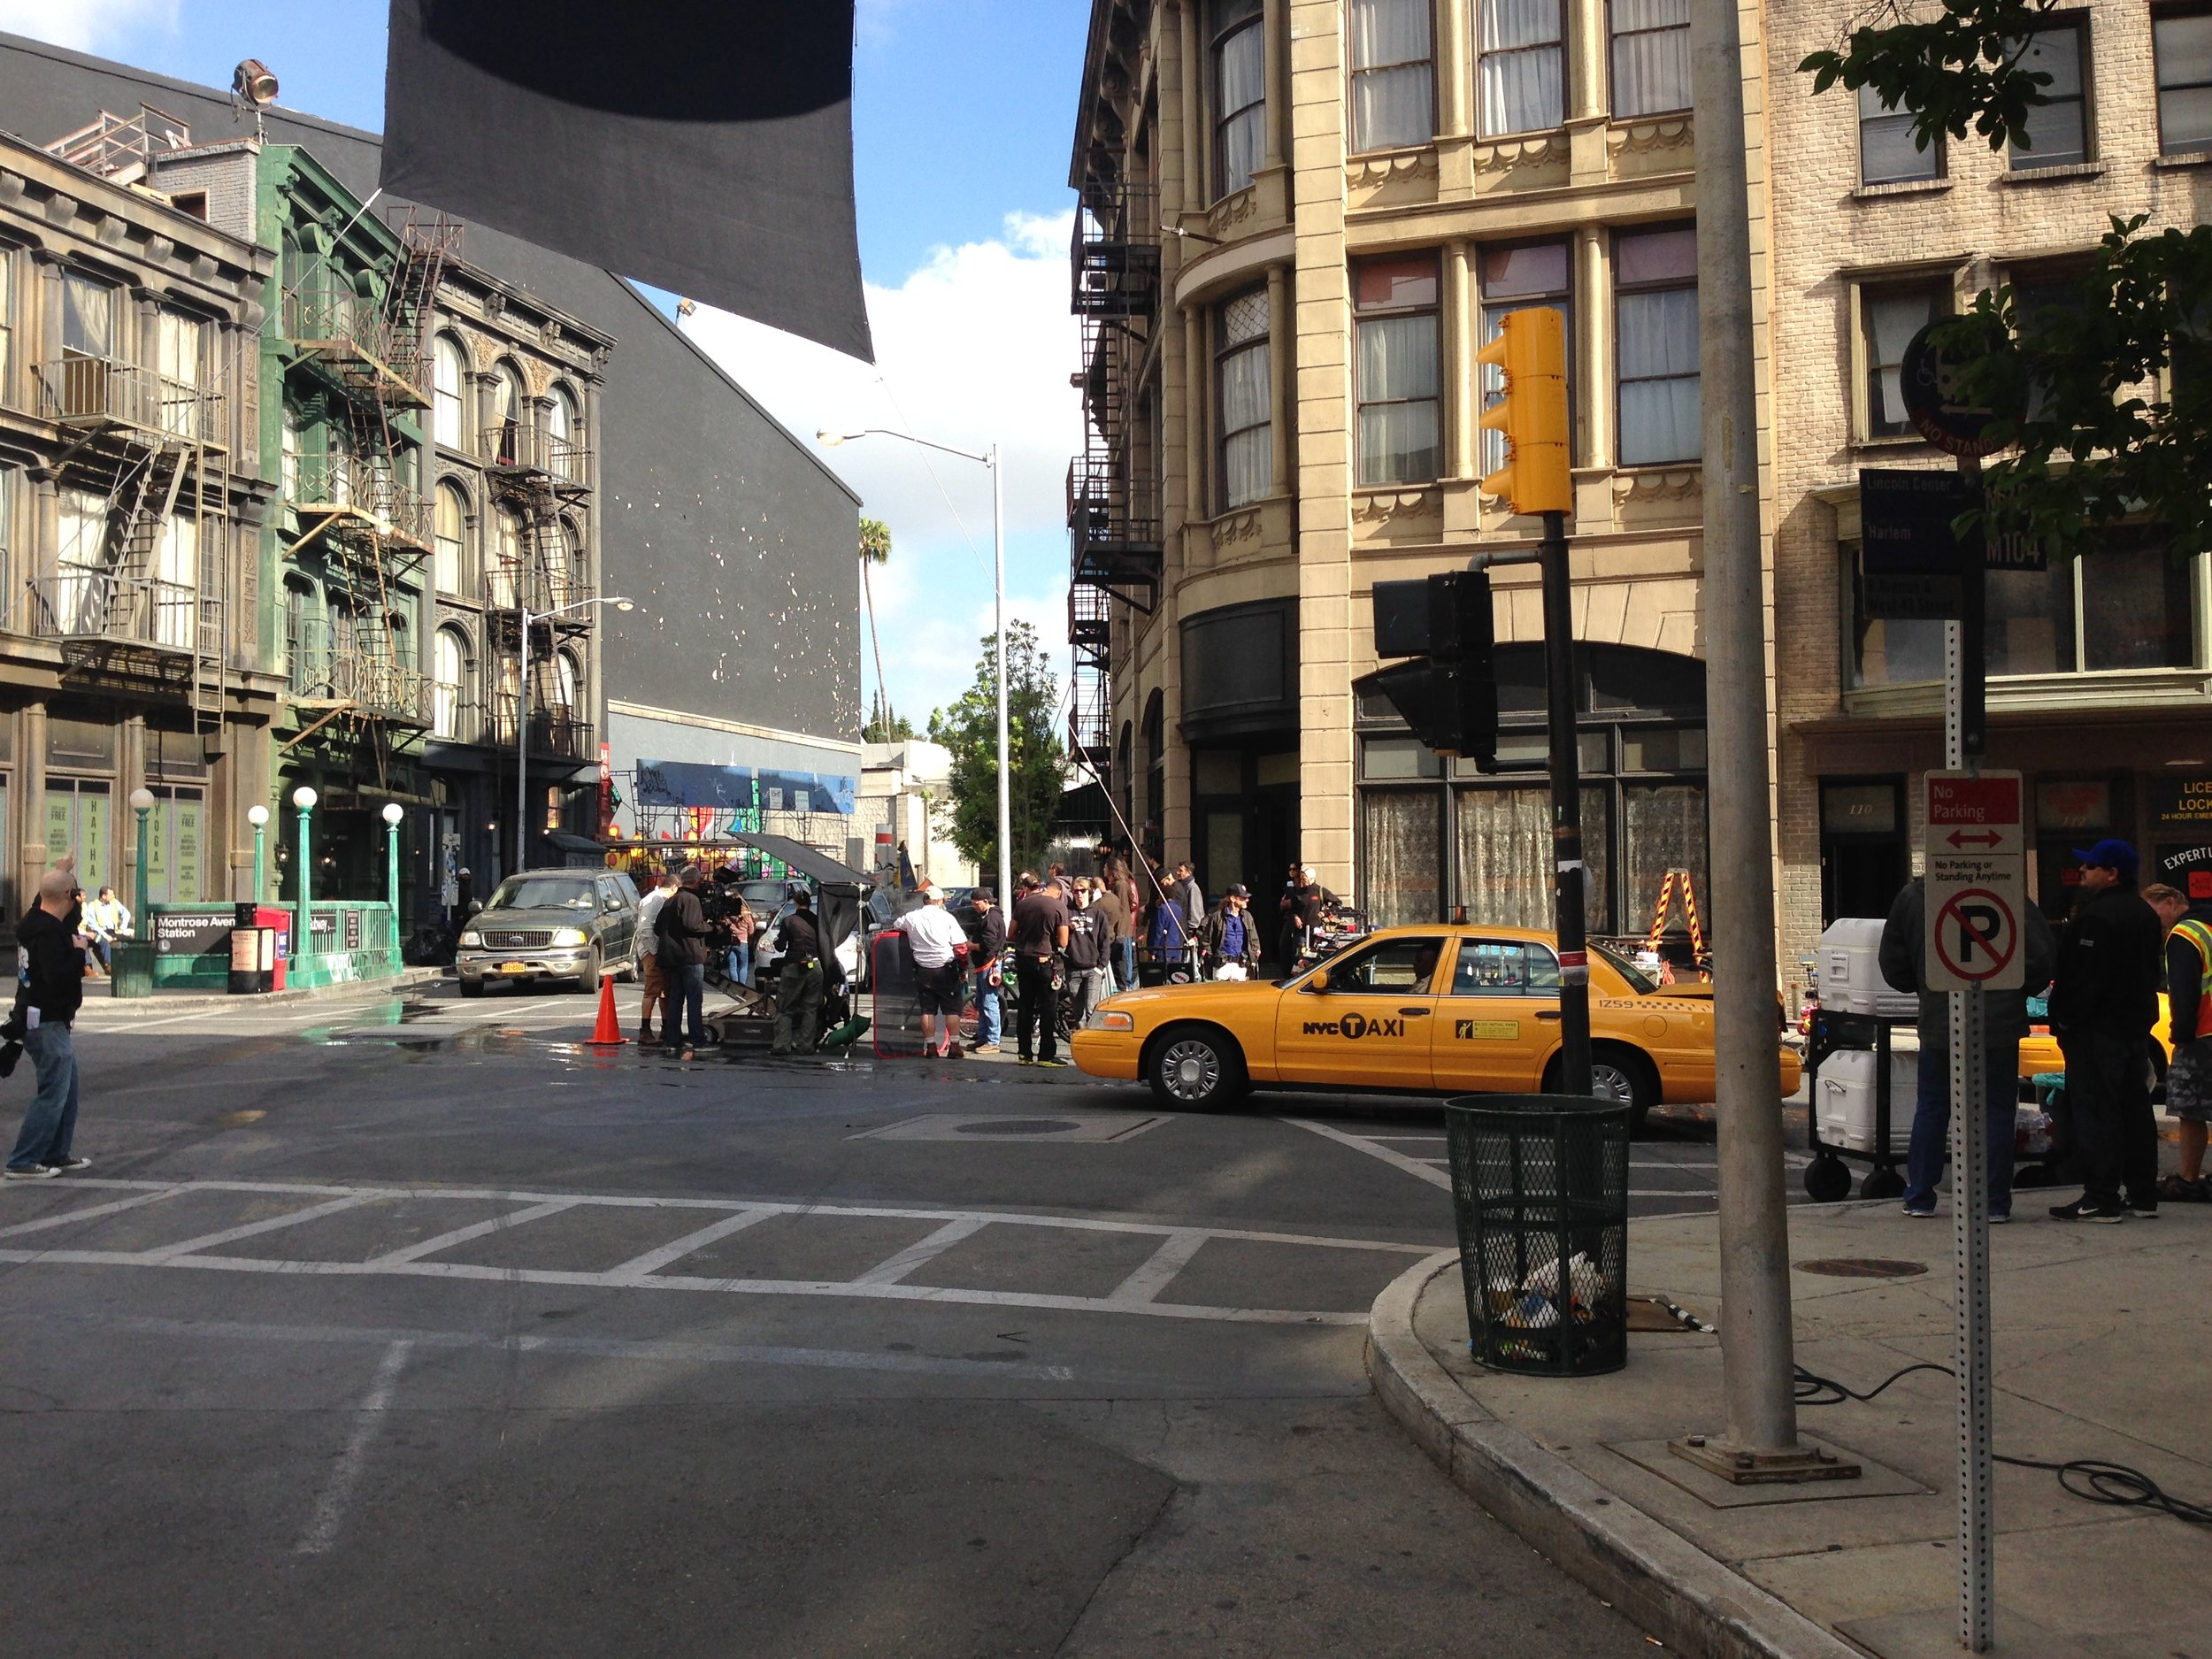 GLEE CREW FILMING ON THE PARAMOUNT STUDIOS' NEW YORK STREET